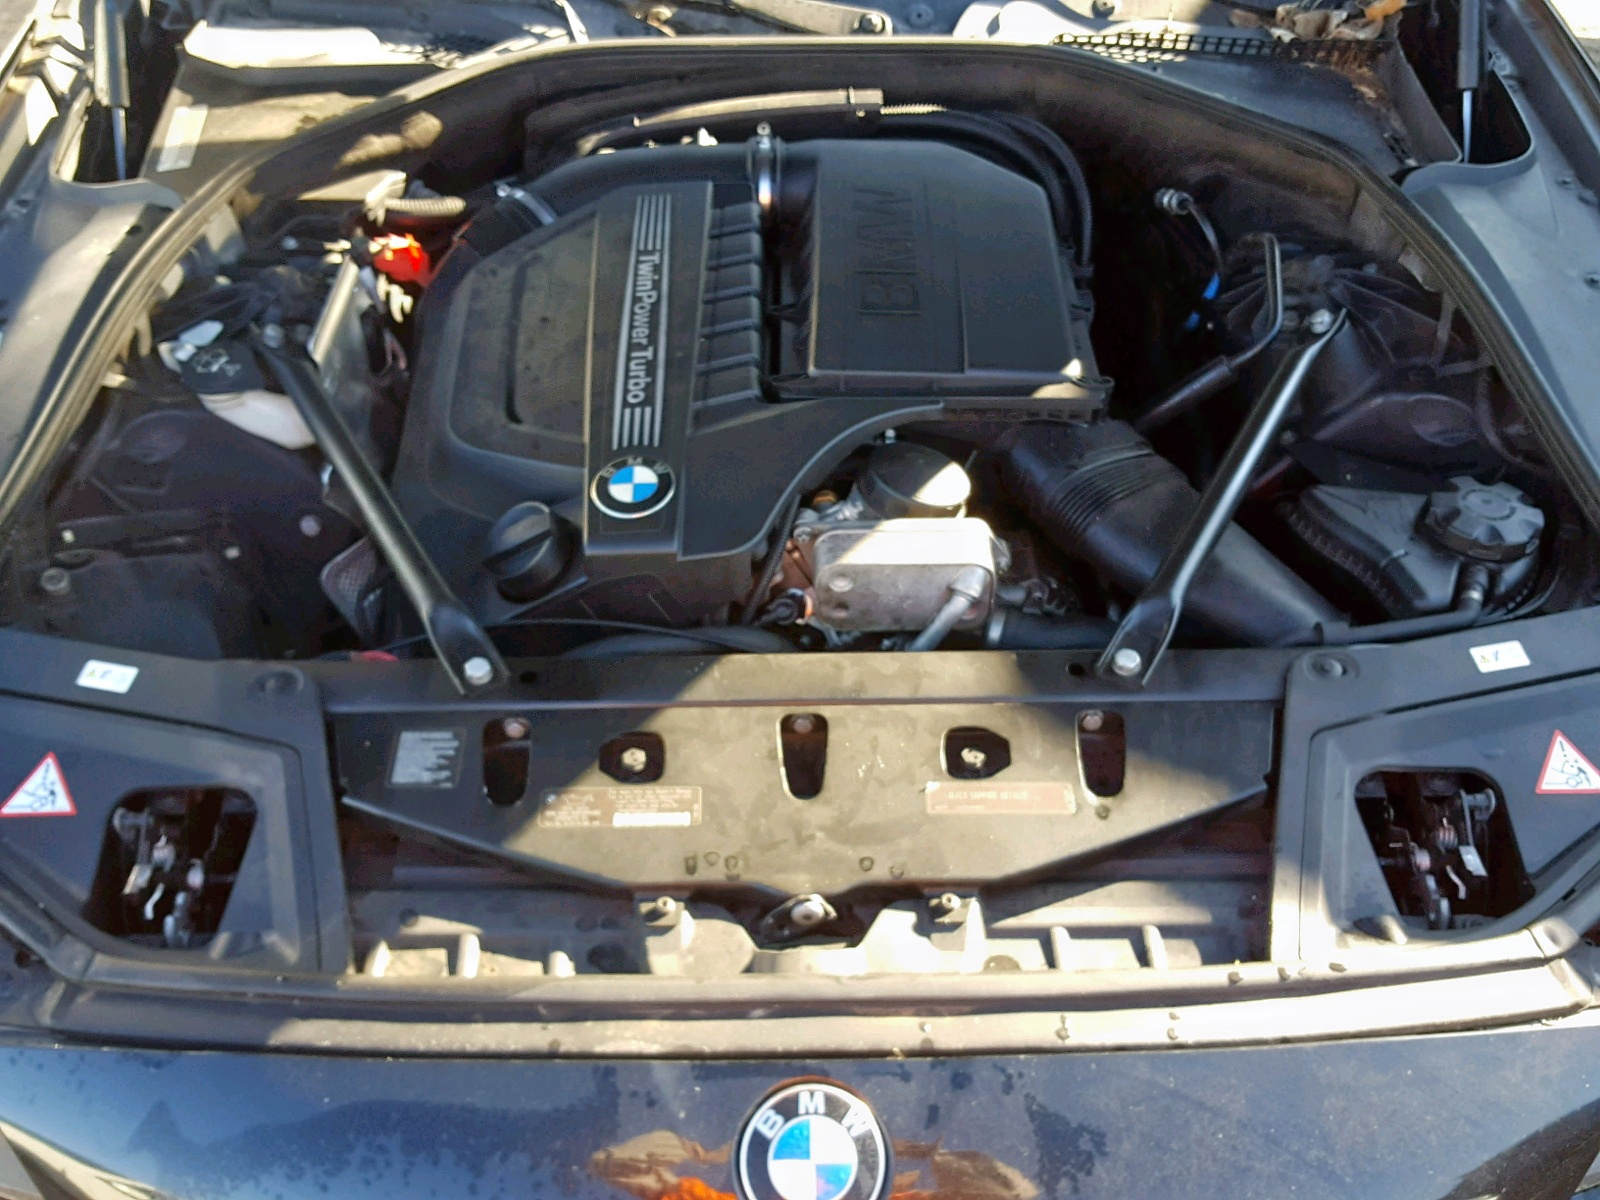 WBAFR7C51BC806279 - 2011 Bmw 535 I 3.0L inside view